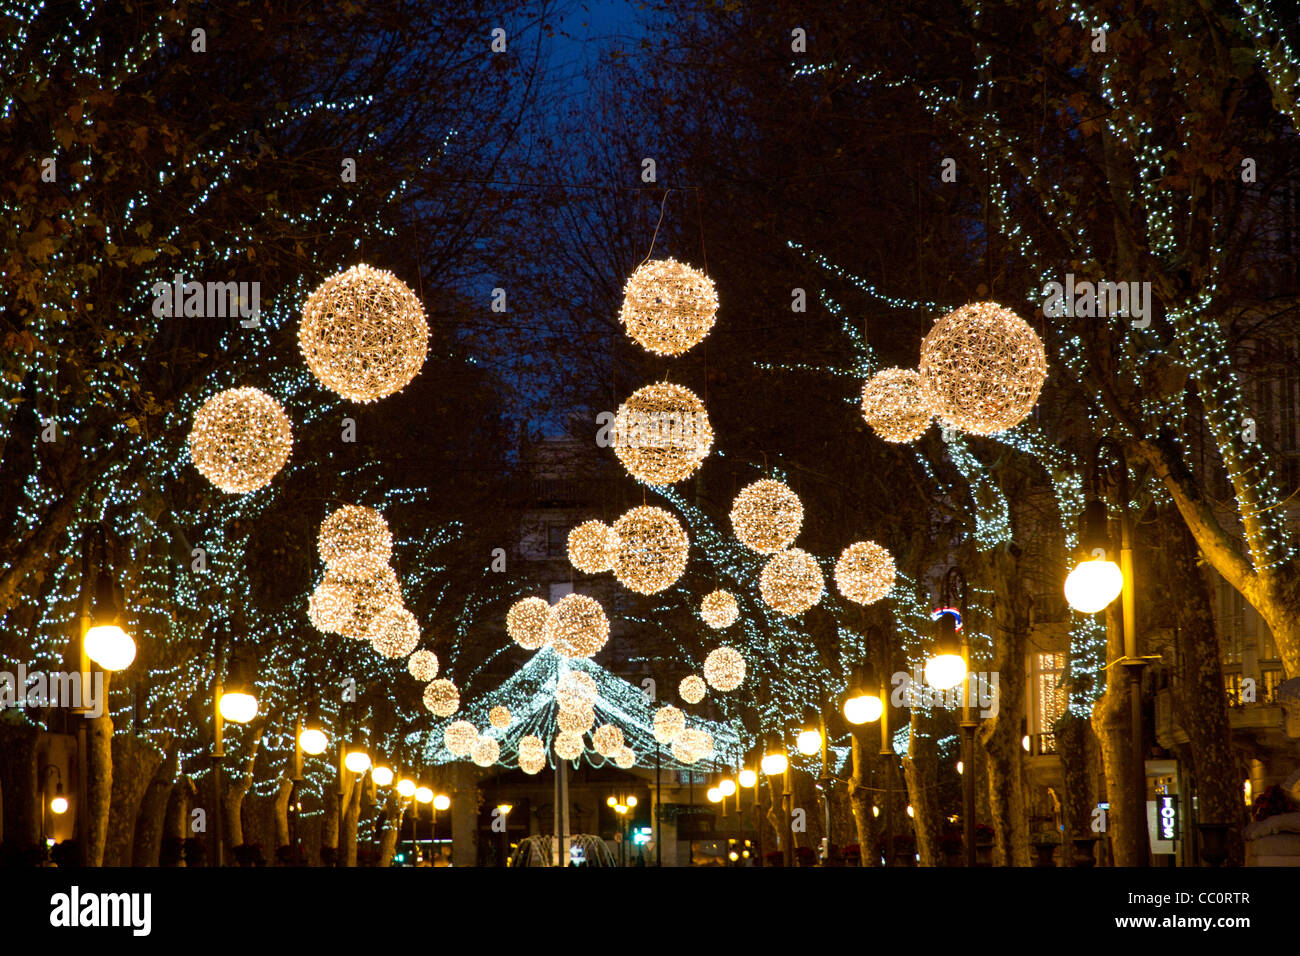 City Christmas Decorations For Sale